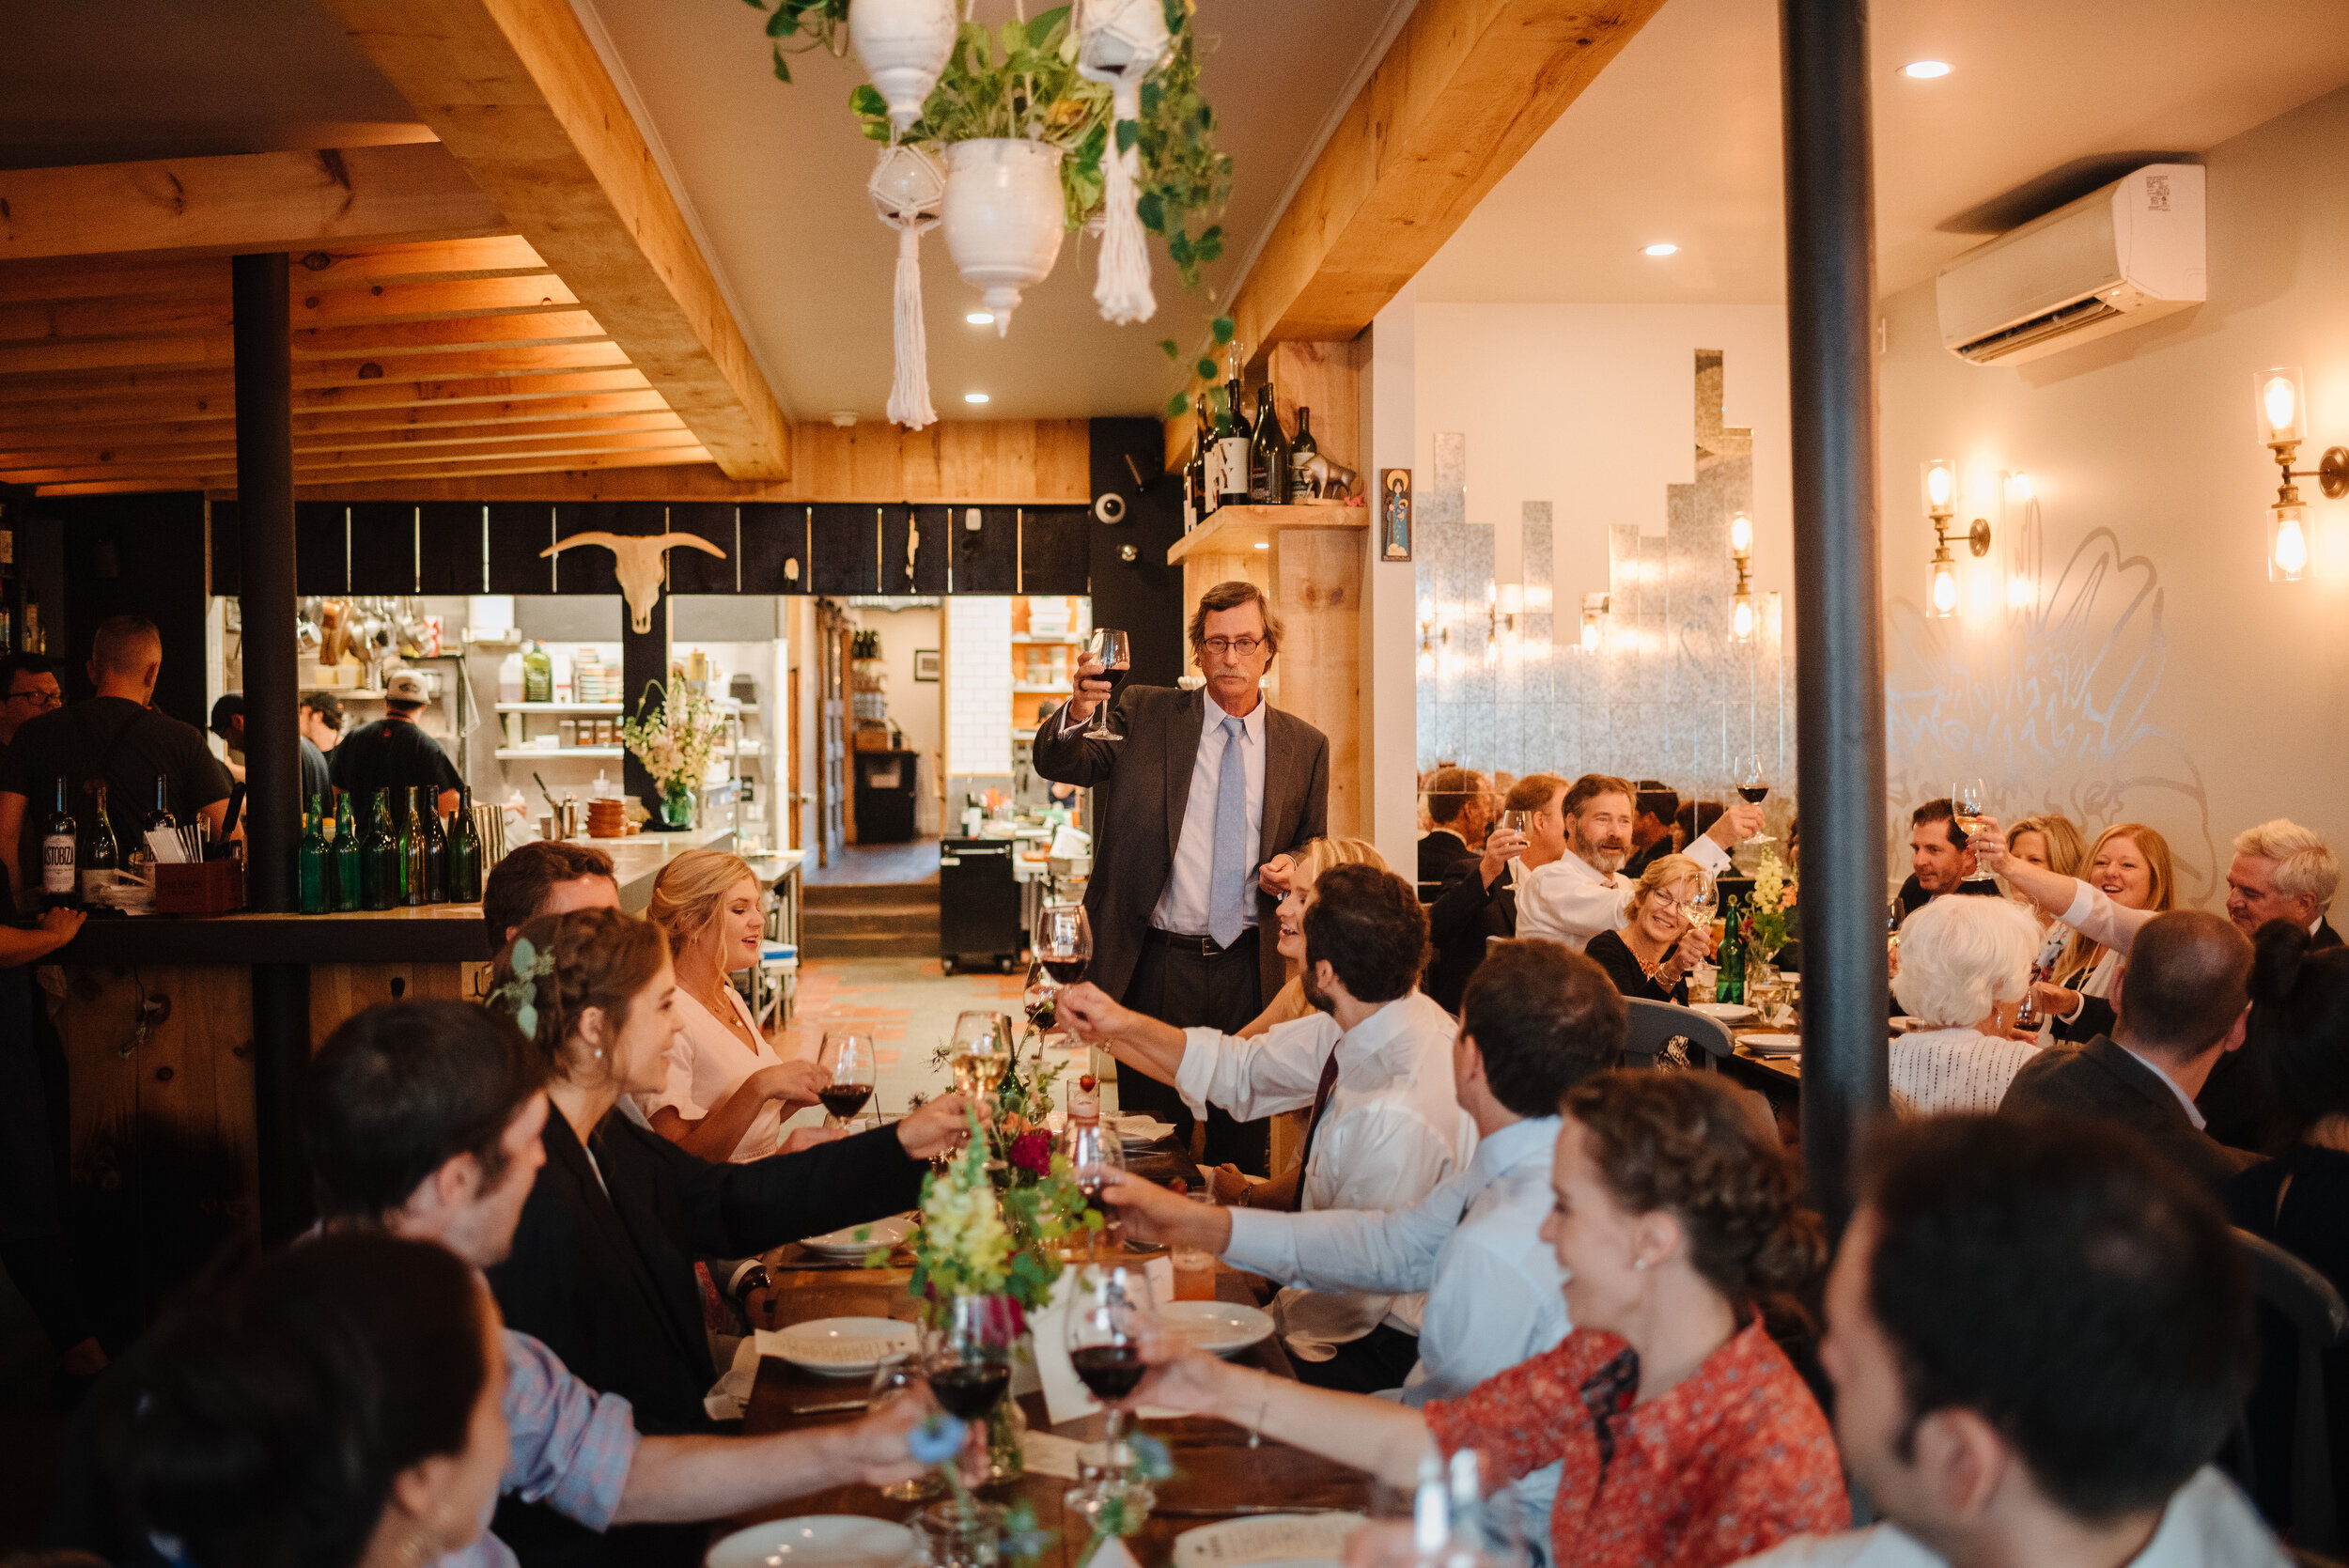 private wedding dinner at chaval in downtown portland maine restaurant wedding venues